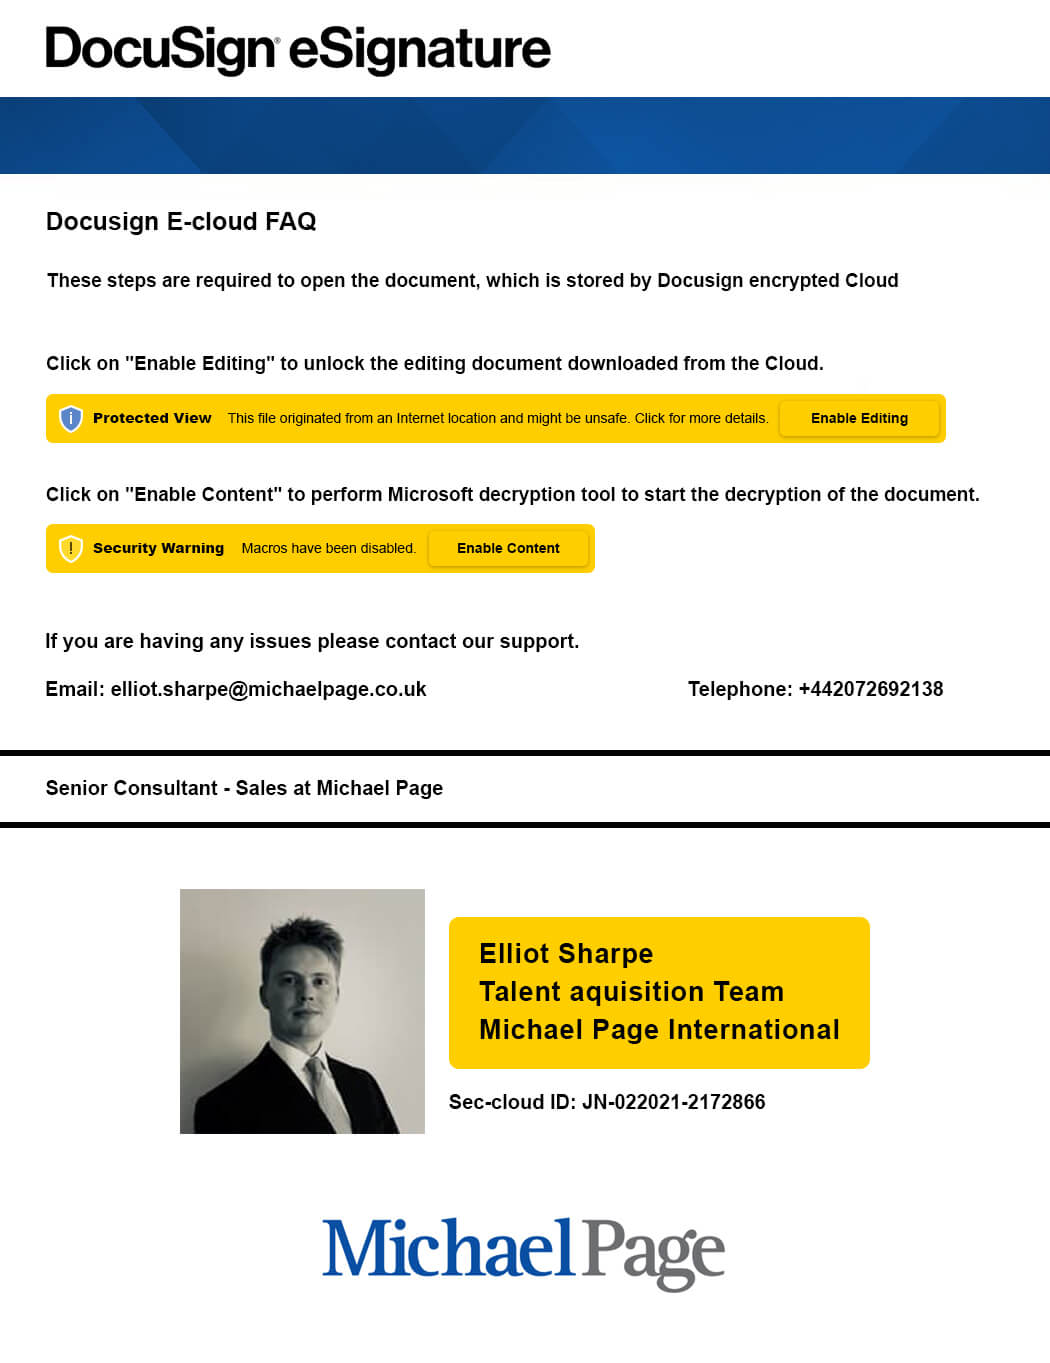 michael page phishing campaign image heimdal security